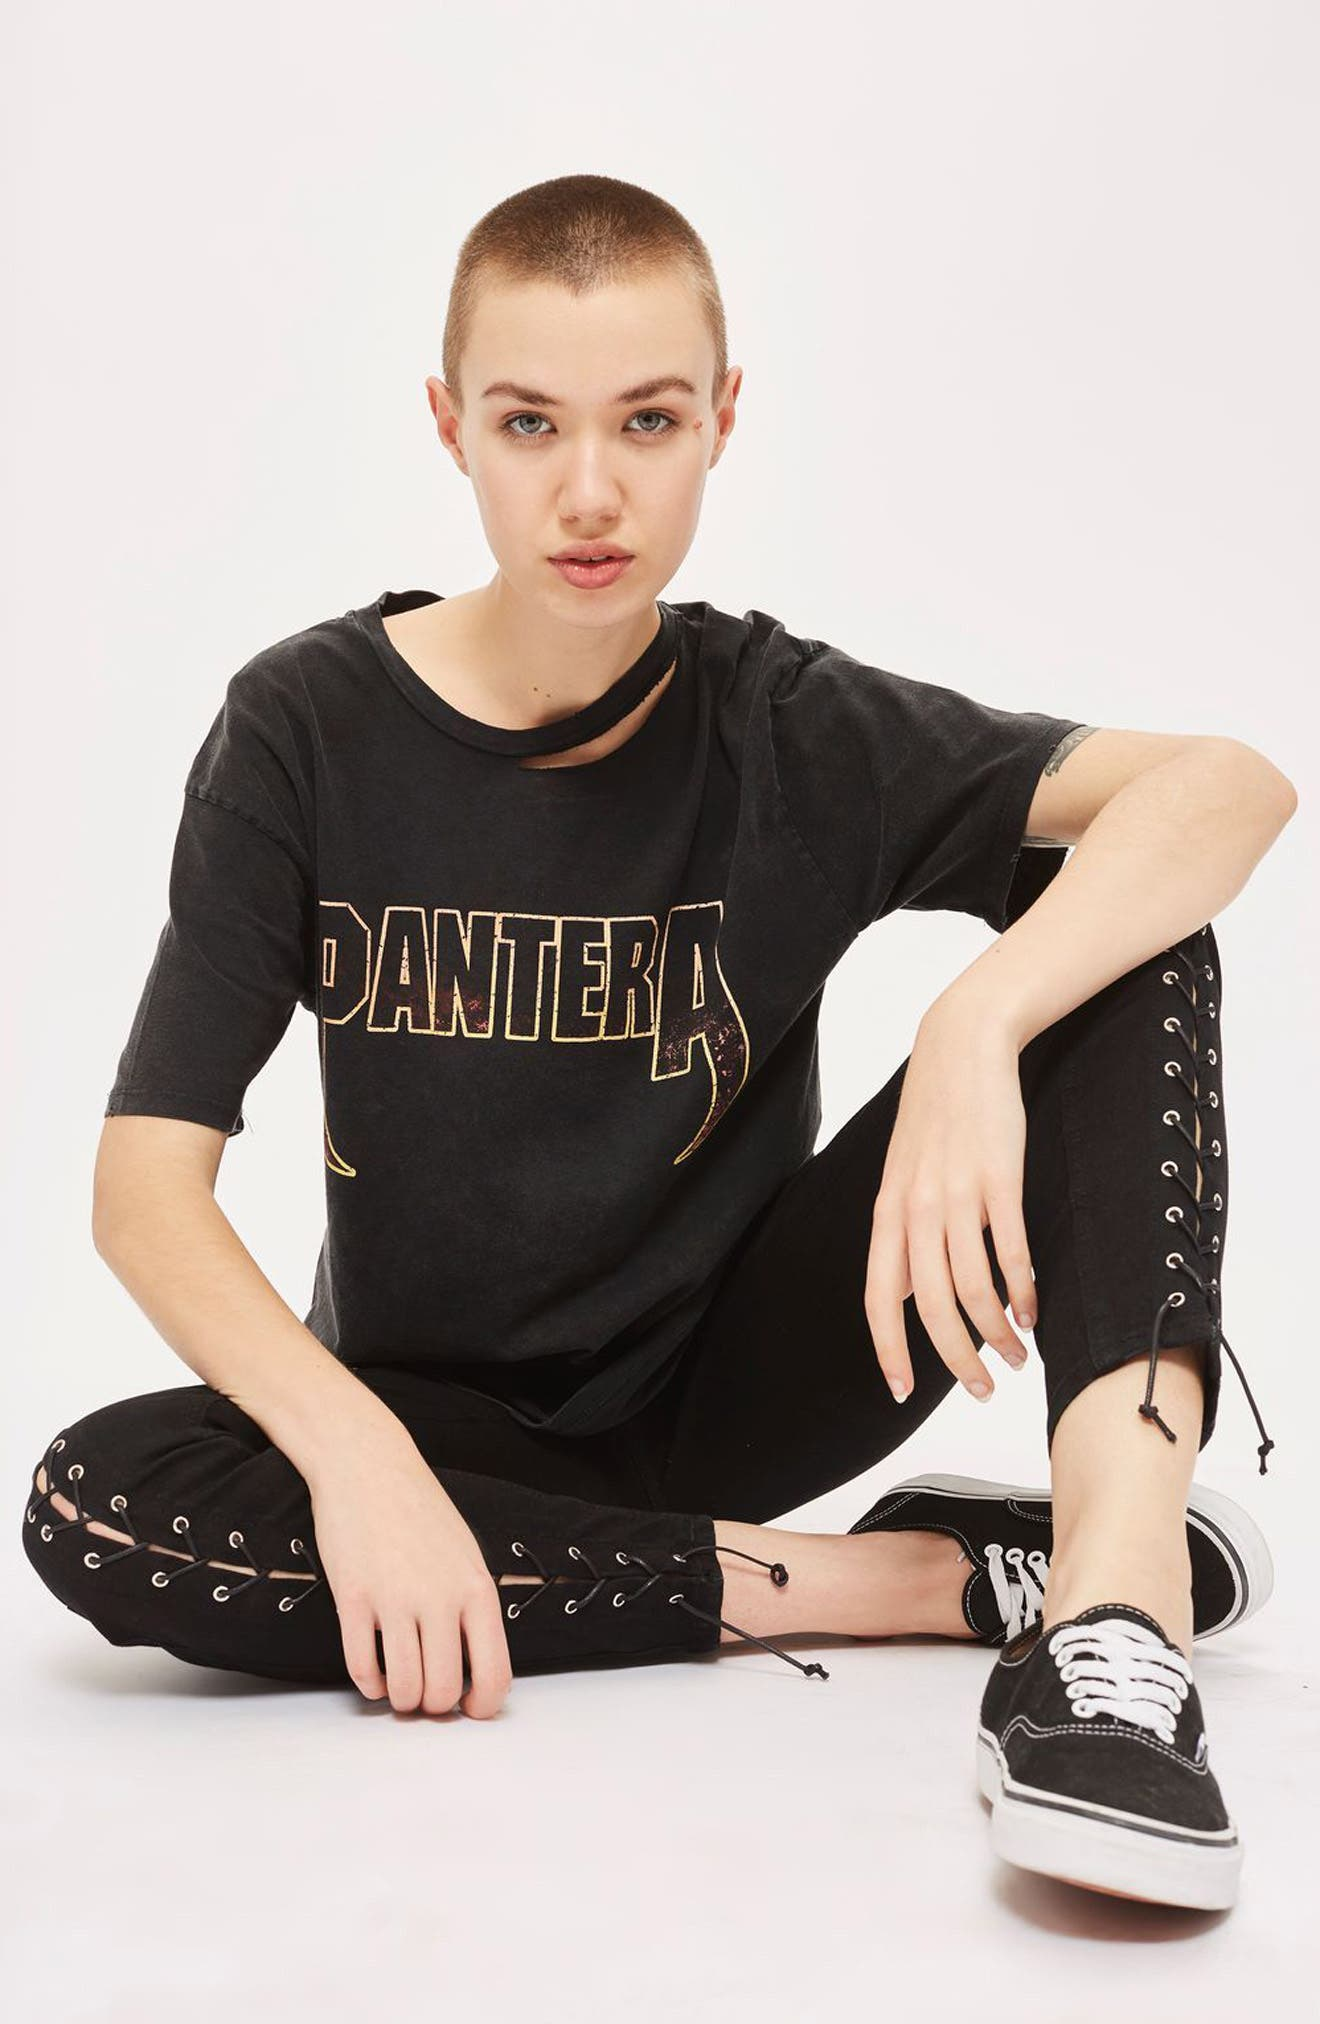 Jamie Front Laced Skinny Jeans,                             Alternate thumbnail 2, color,                             Black